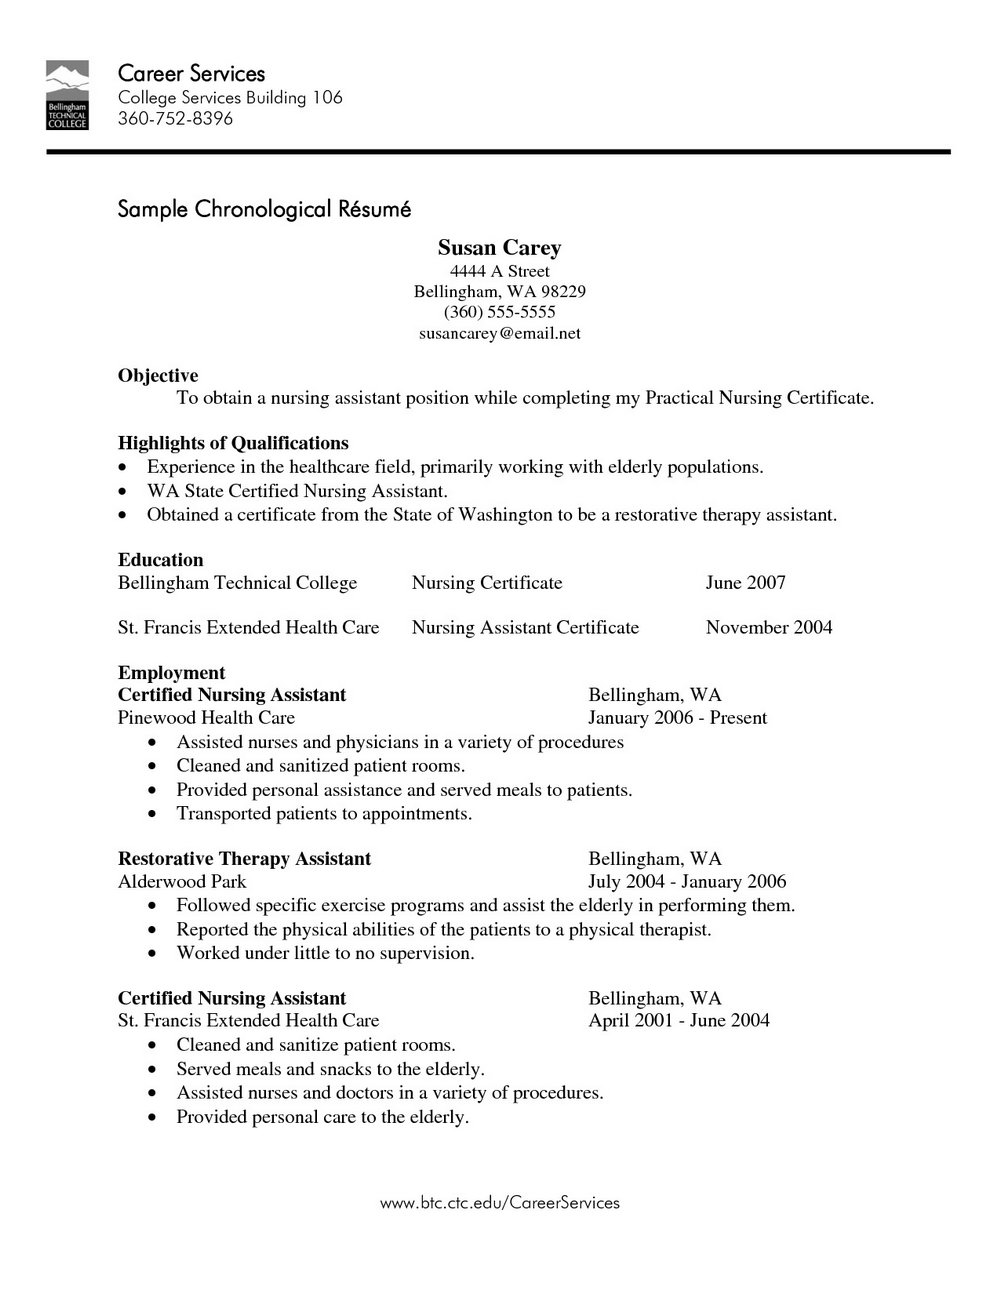 Sample Resume For Medical Assistant Job With No Experience